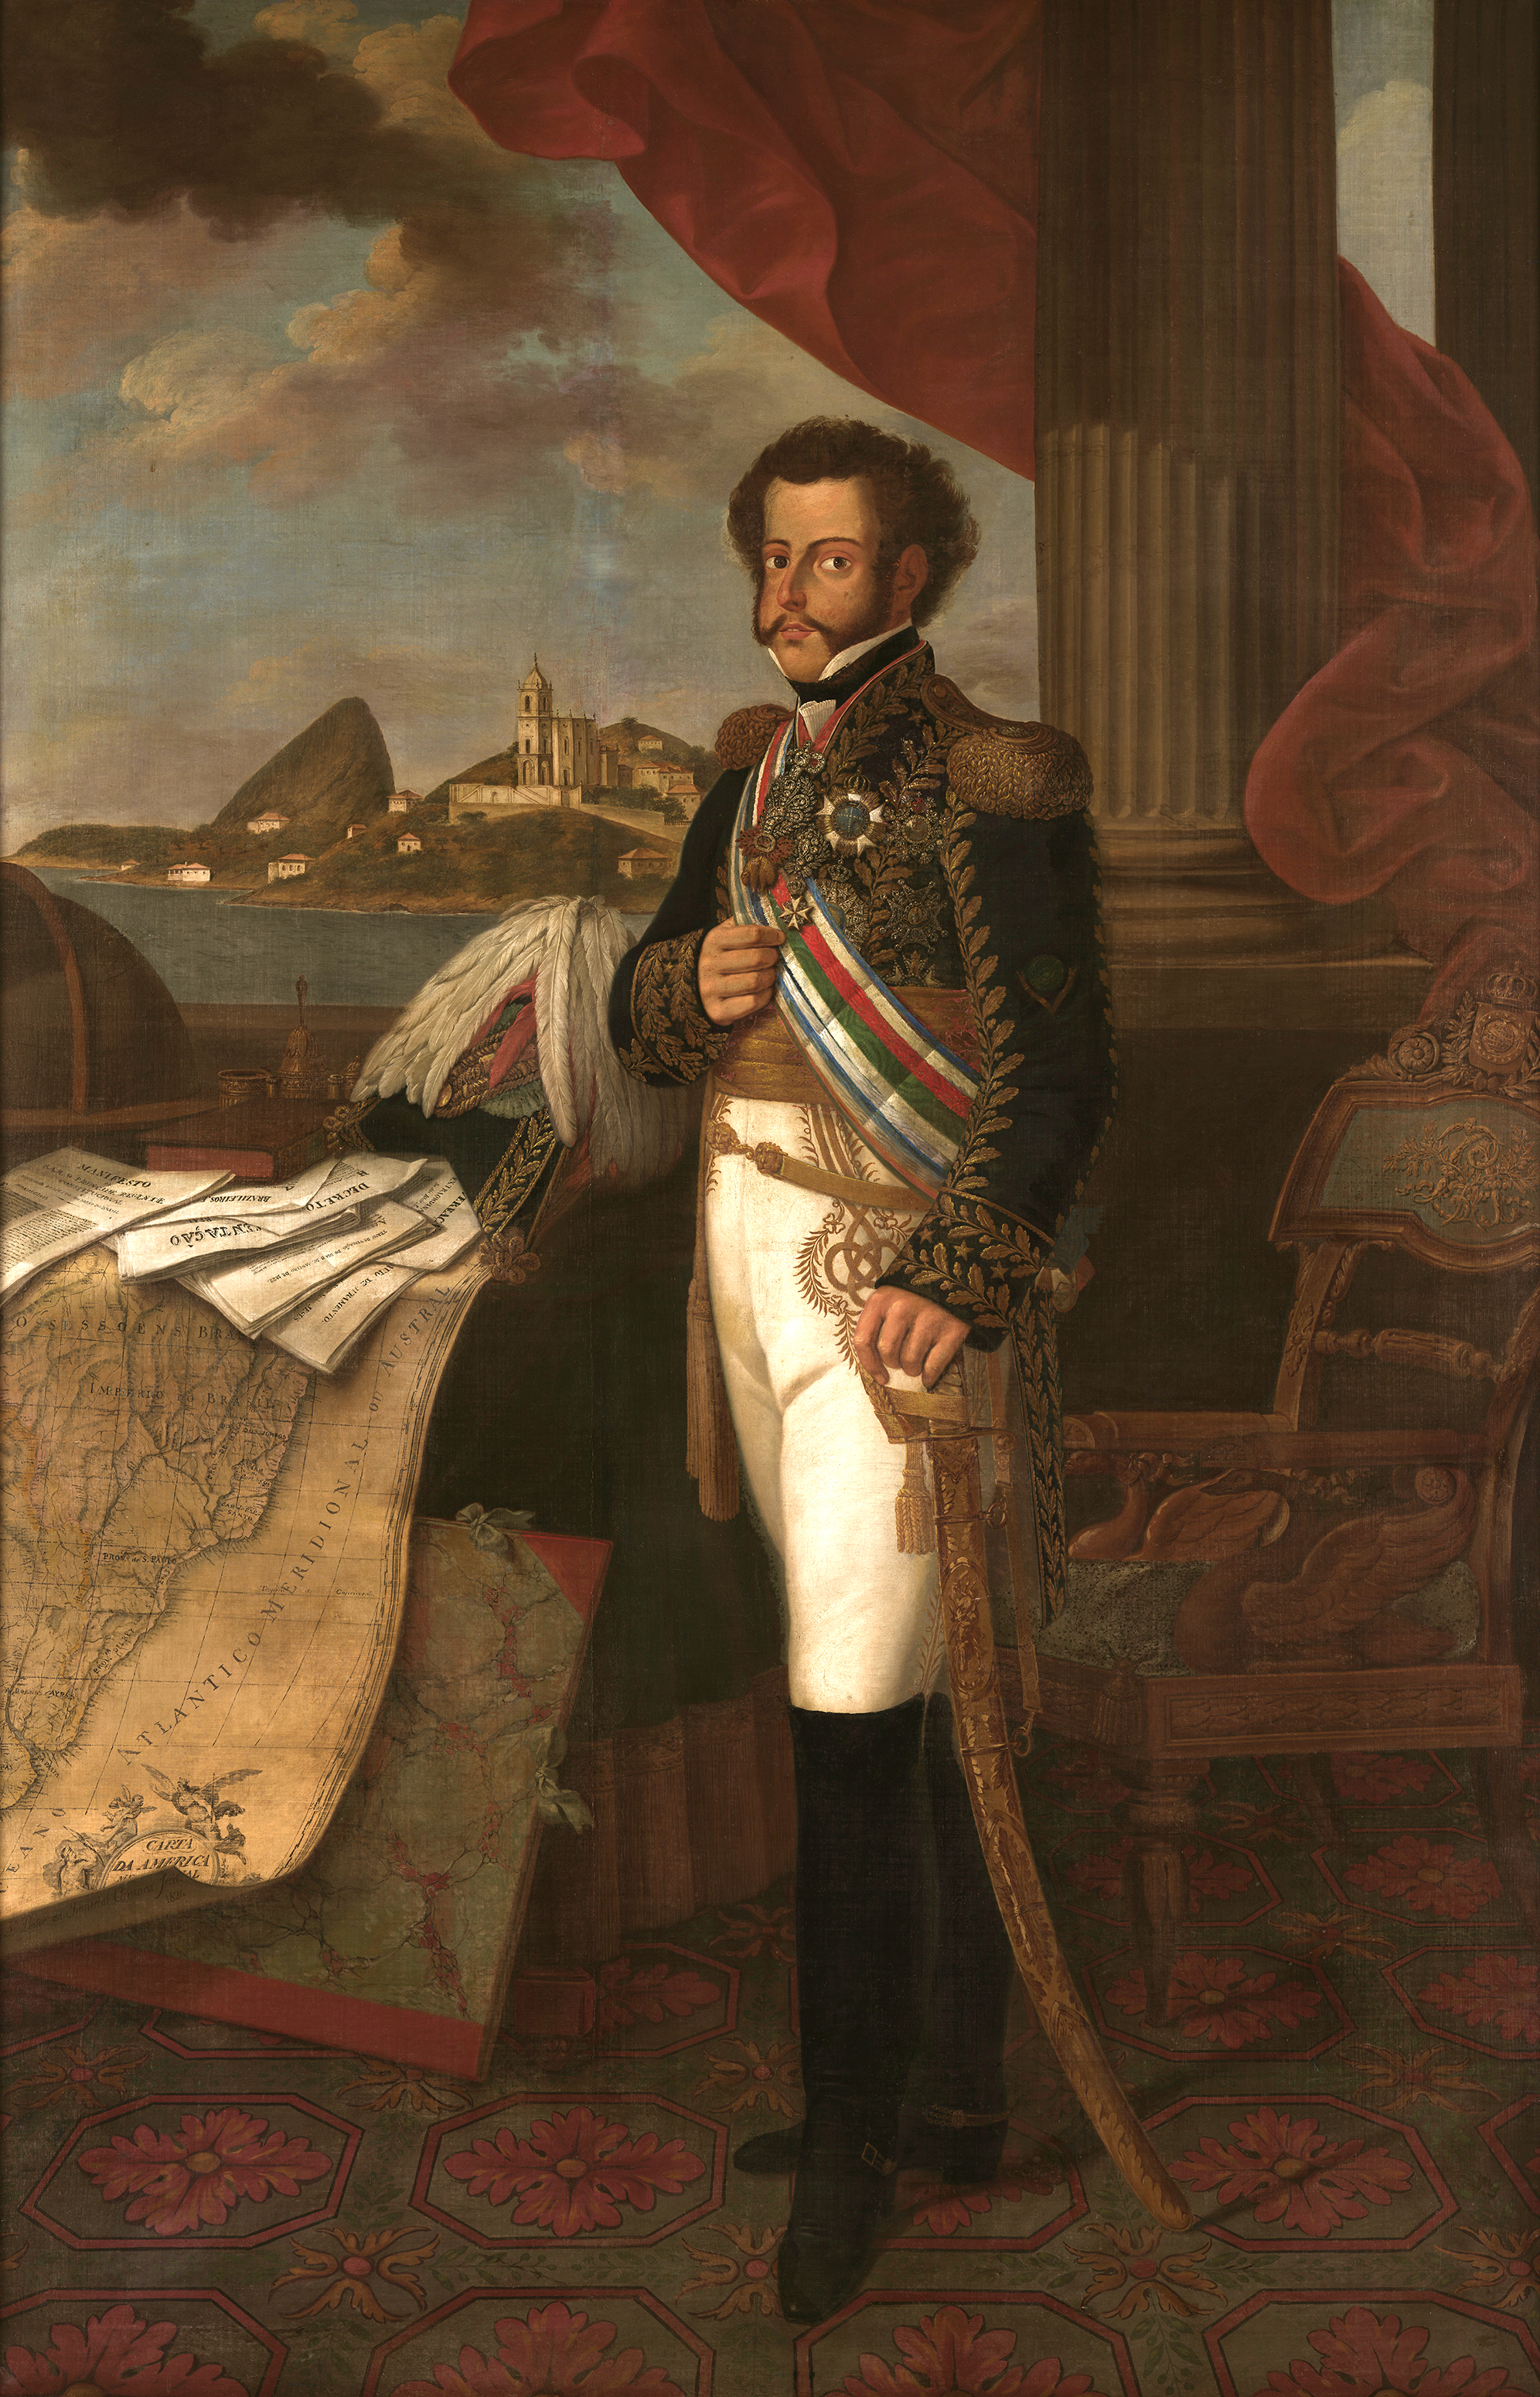 Portrait of Pedro IV (1798-1834), King of Portugal (1826), Crown Prince of Portugal (1816-1826), Emperor of Brazil (Pedro I) from 1822 to 1831, 1824 | Portraits of Kings